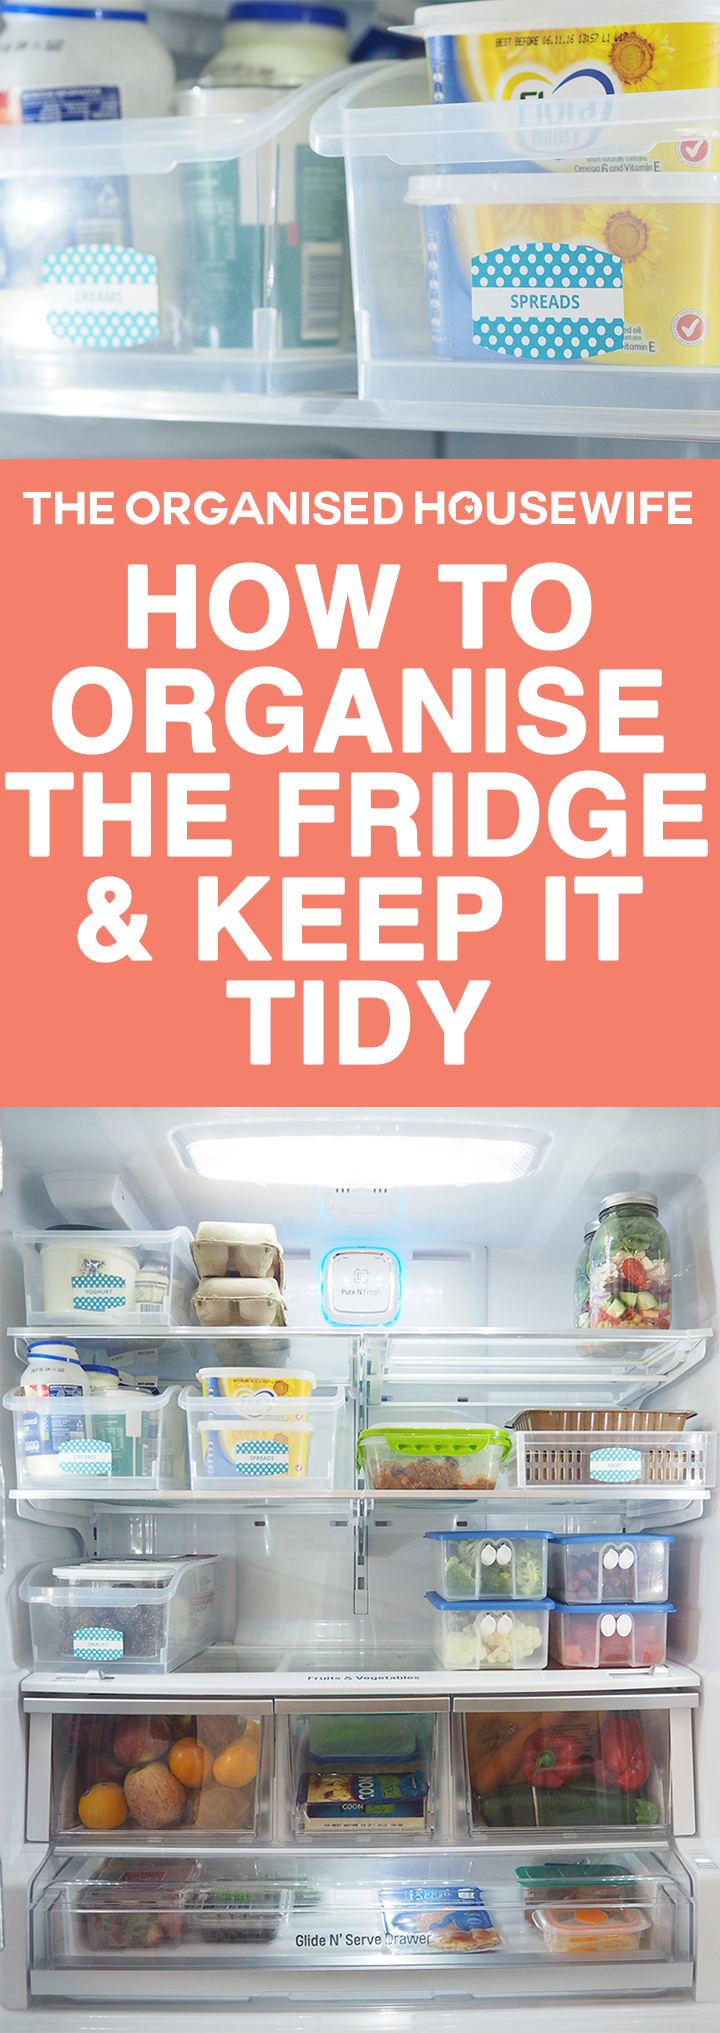 Organise the fridge to help keep it tidy, prevent food from spoiling, ensure leftovers get eaten and it makes it easy to write a shopping list as I can quickly glance and see what I need to top up.